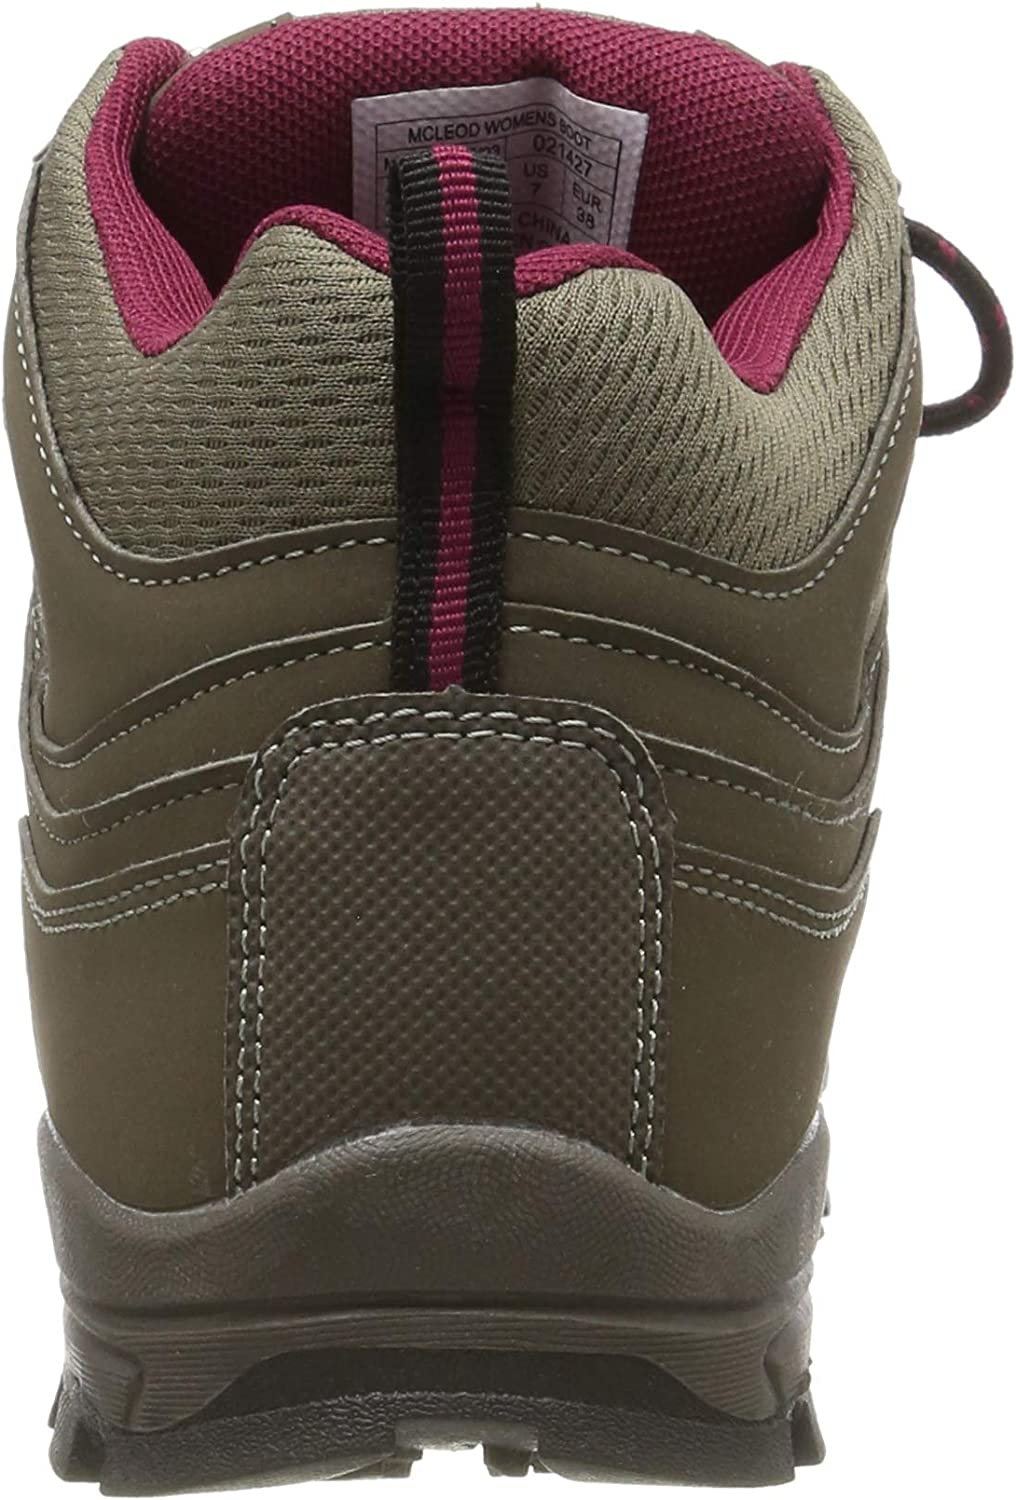 Mountain Warehouse McLeod Womens Comfortable Boots - Breathable Ankle Boots, Durable Hiking Boots, Padded & Lightweight Walking Shoes - Ideal for Trekking & Travelling Brown